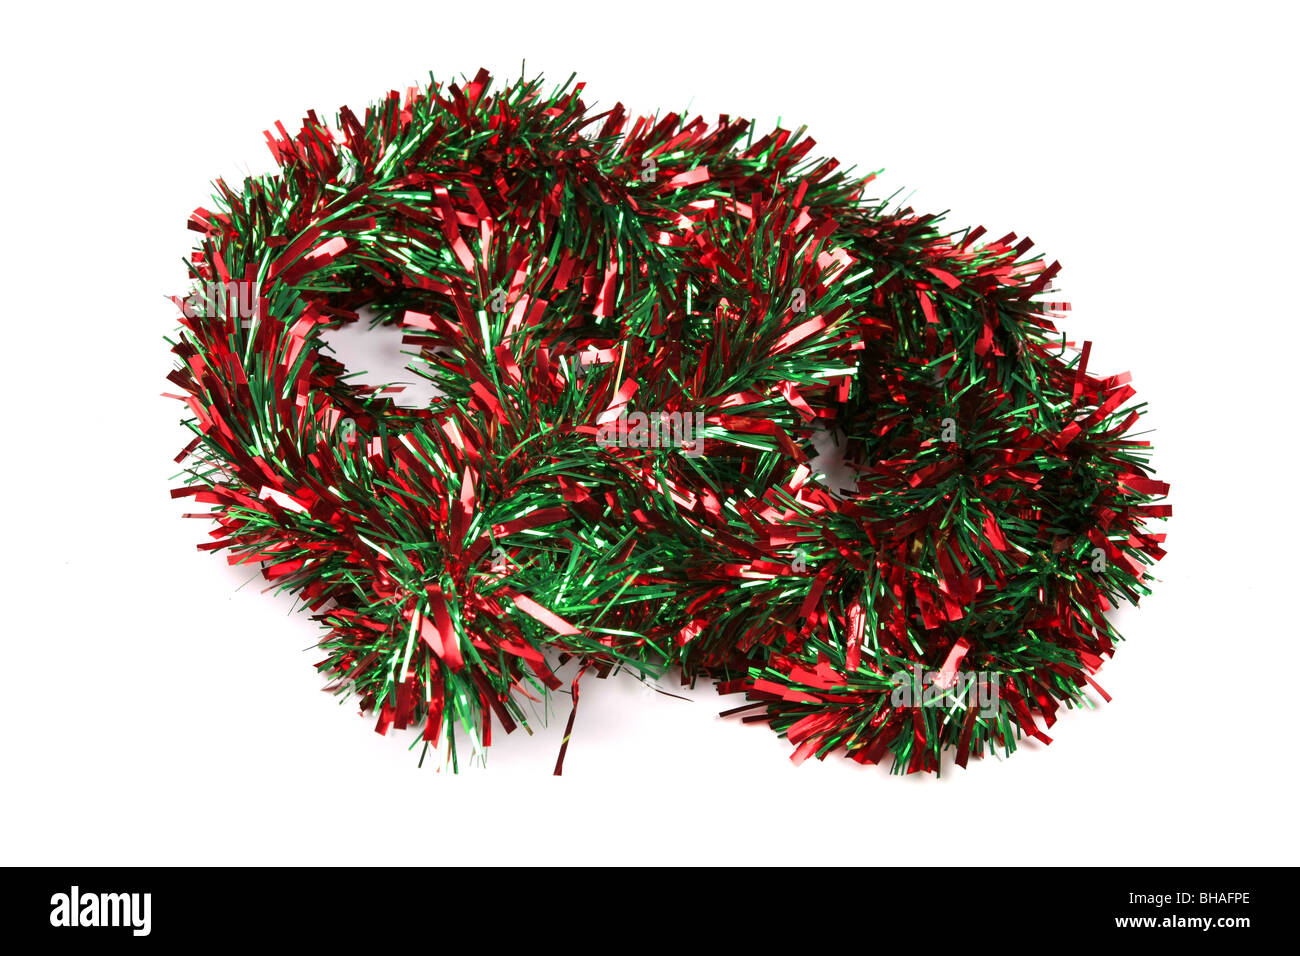 Red and Green Tinsel against a white background - Stock Image